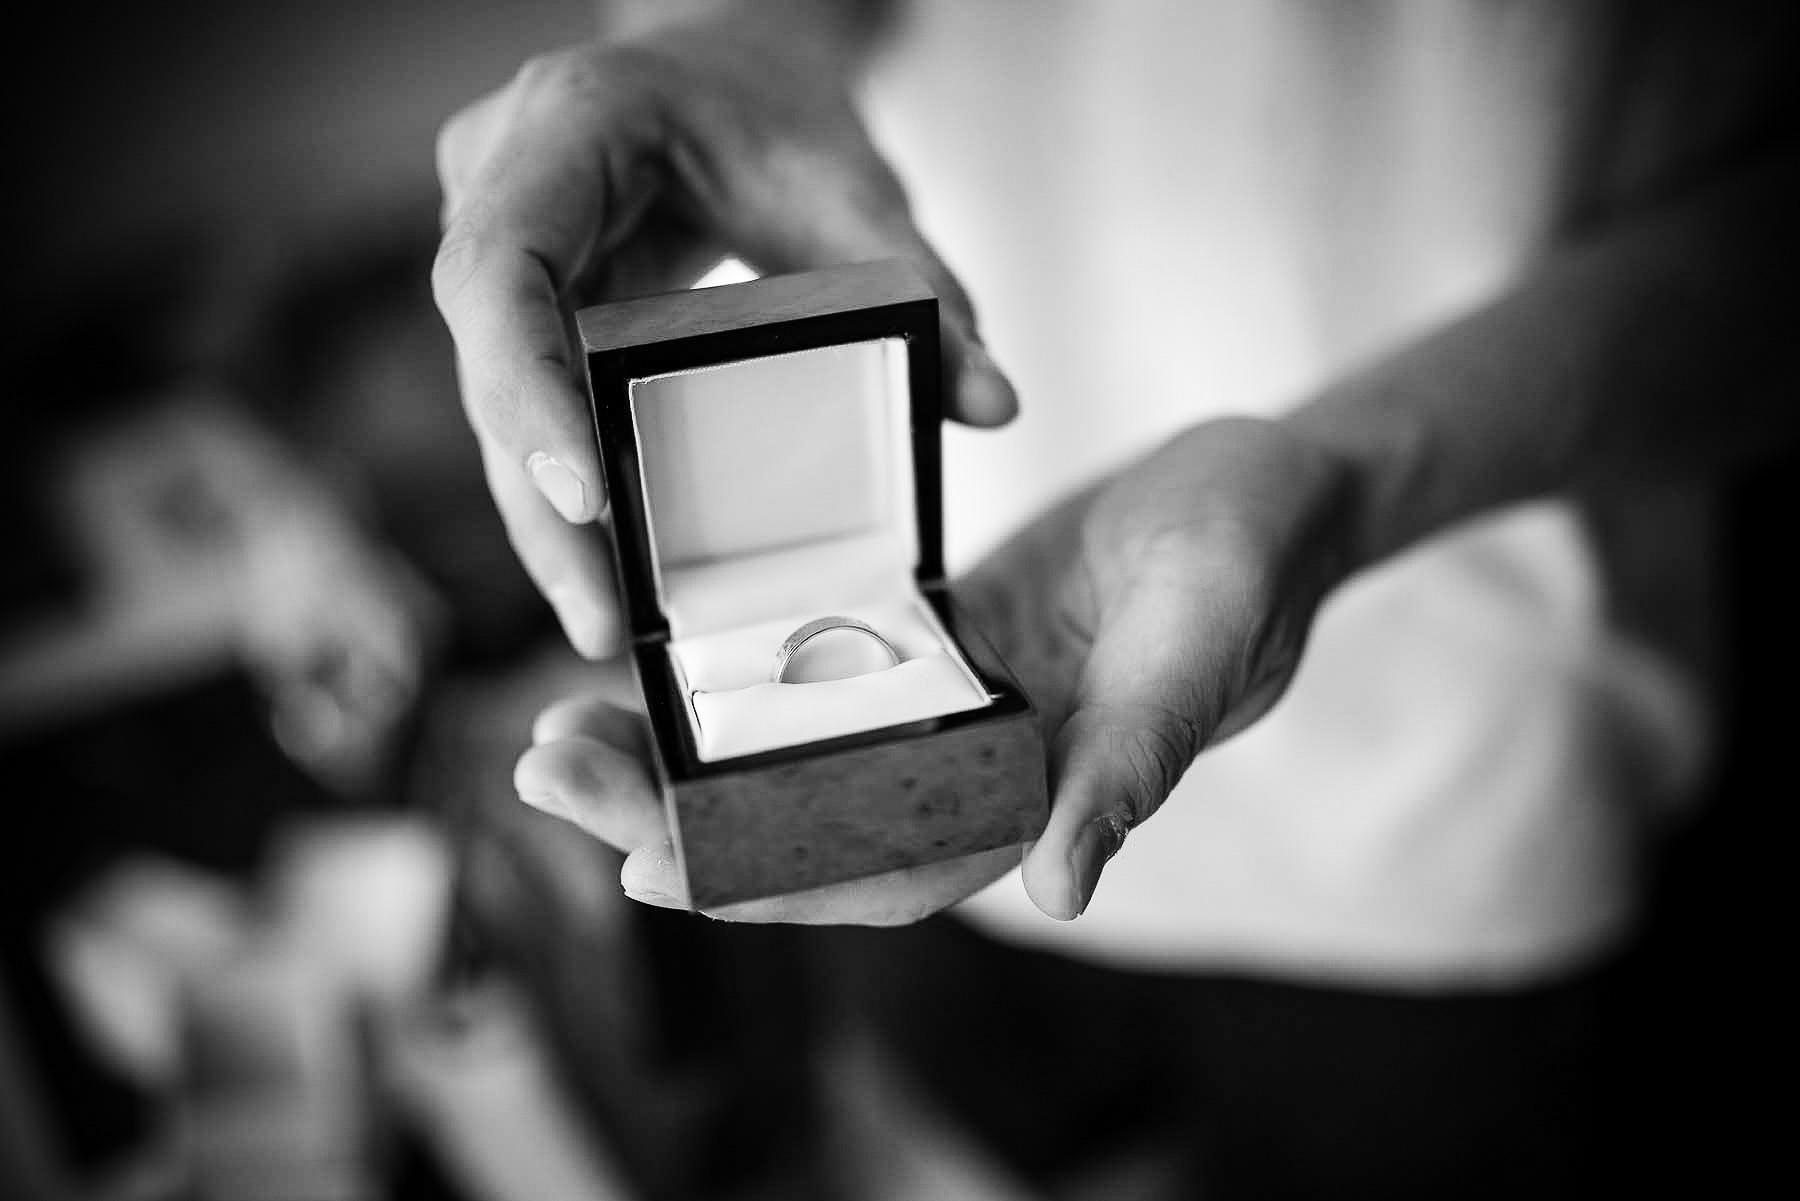 groom-showing-wedding-ring-box-black-and-white-reportage-photography-06